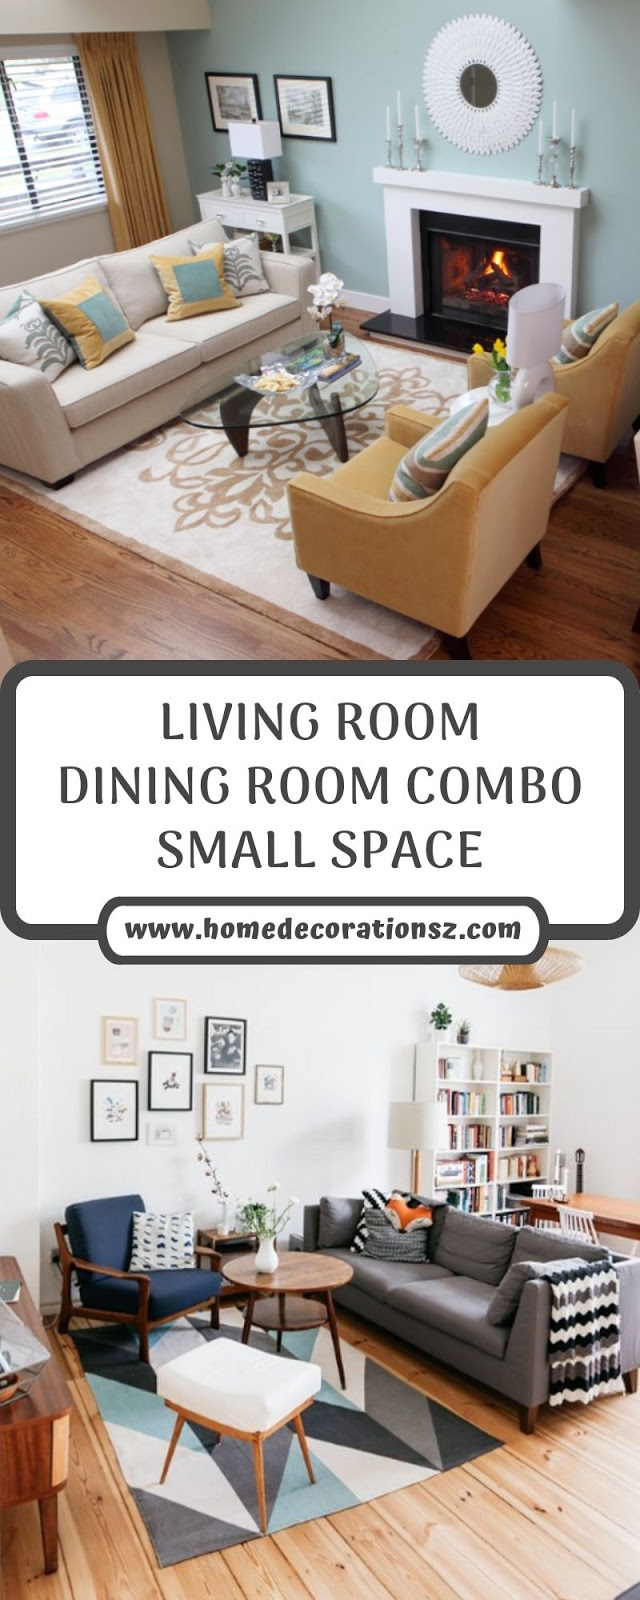 LIVING ROOM DINING ROOM COMBO SMALL SPACE